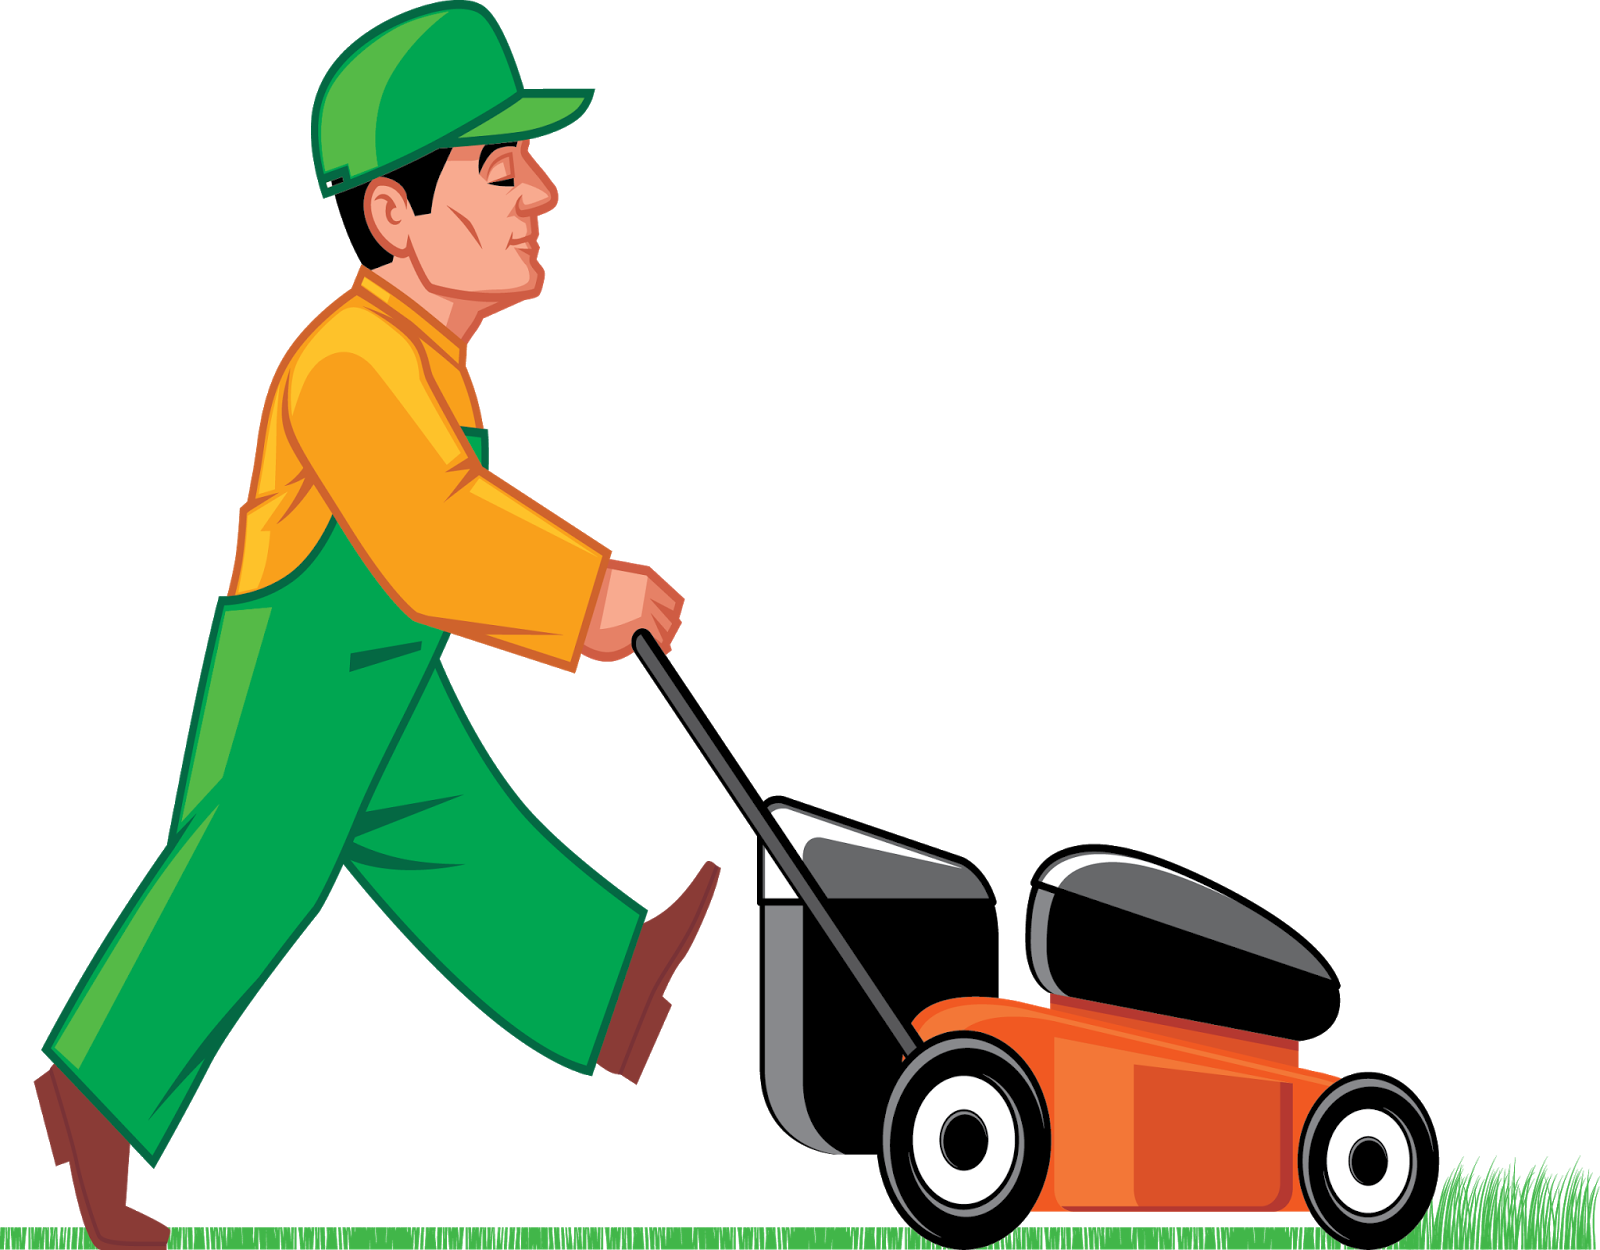 Free Cutting Grass Cliparts, Download Free Clip Art, Free.